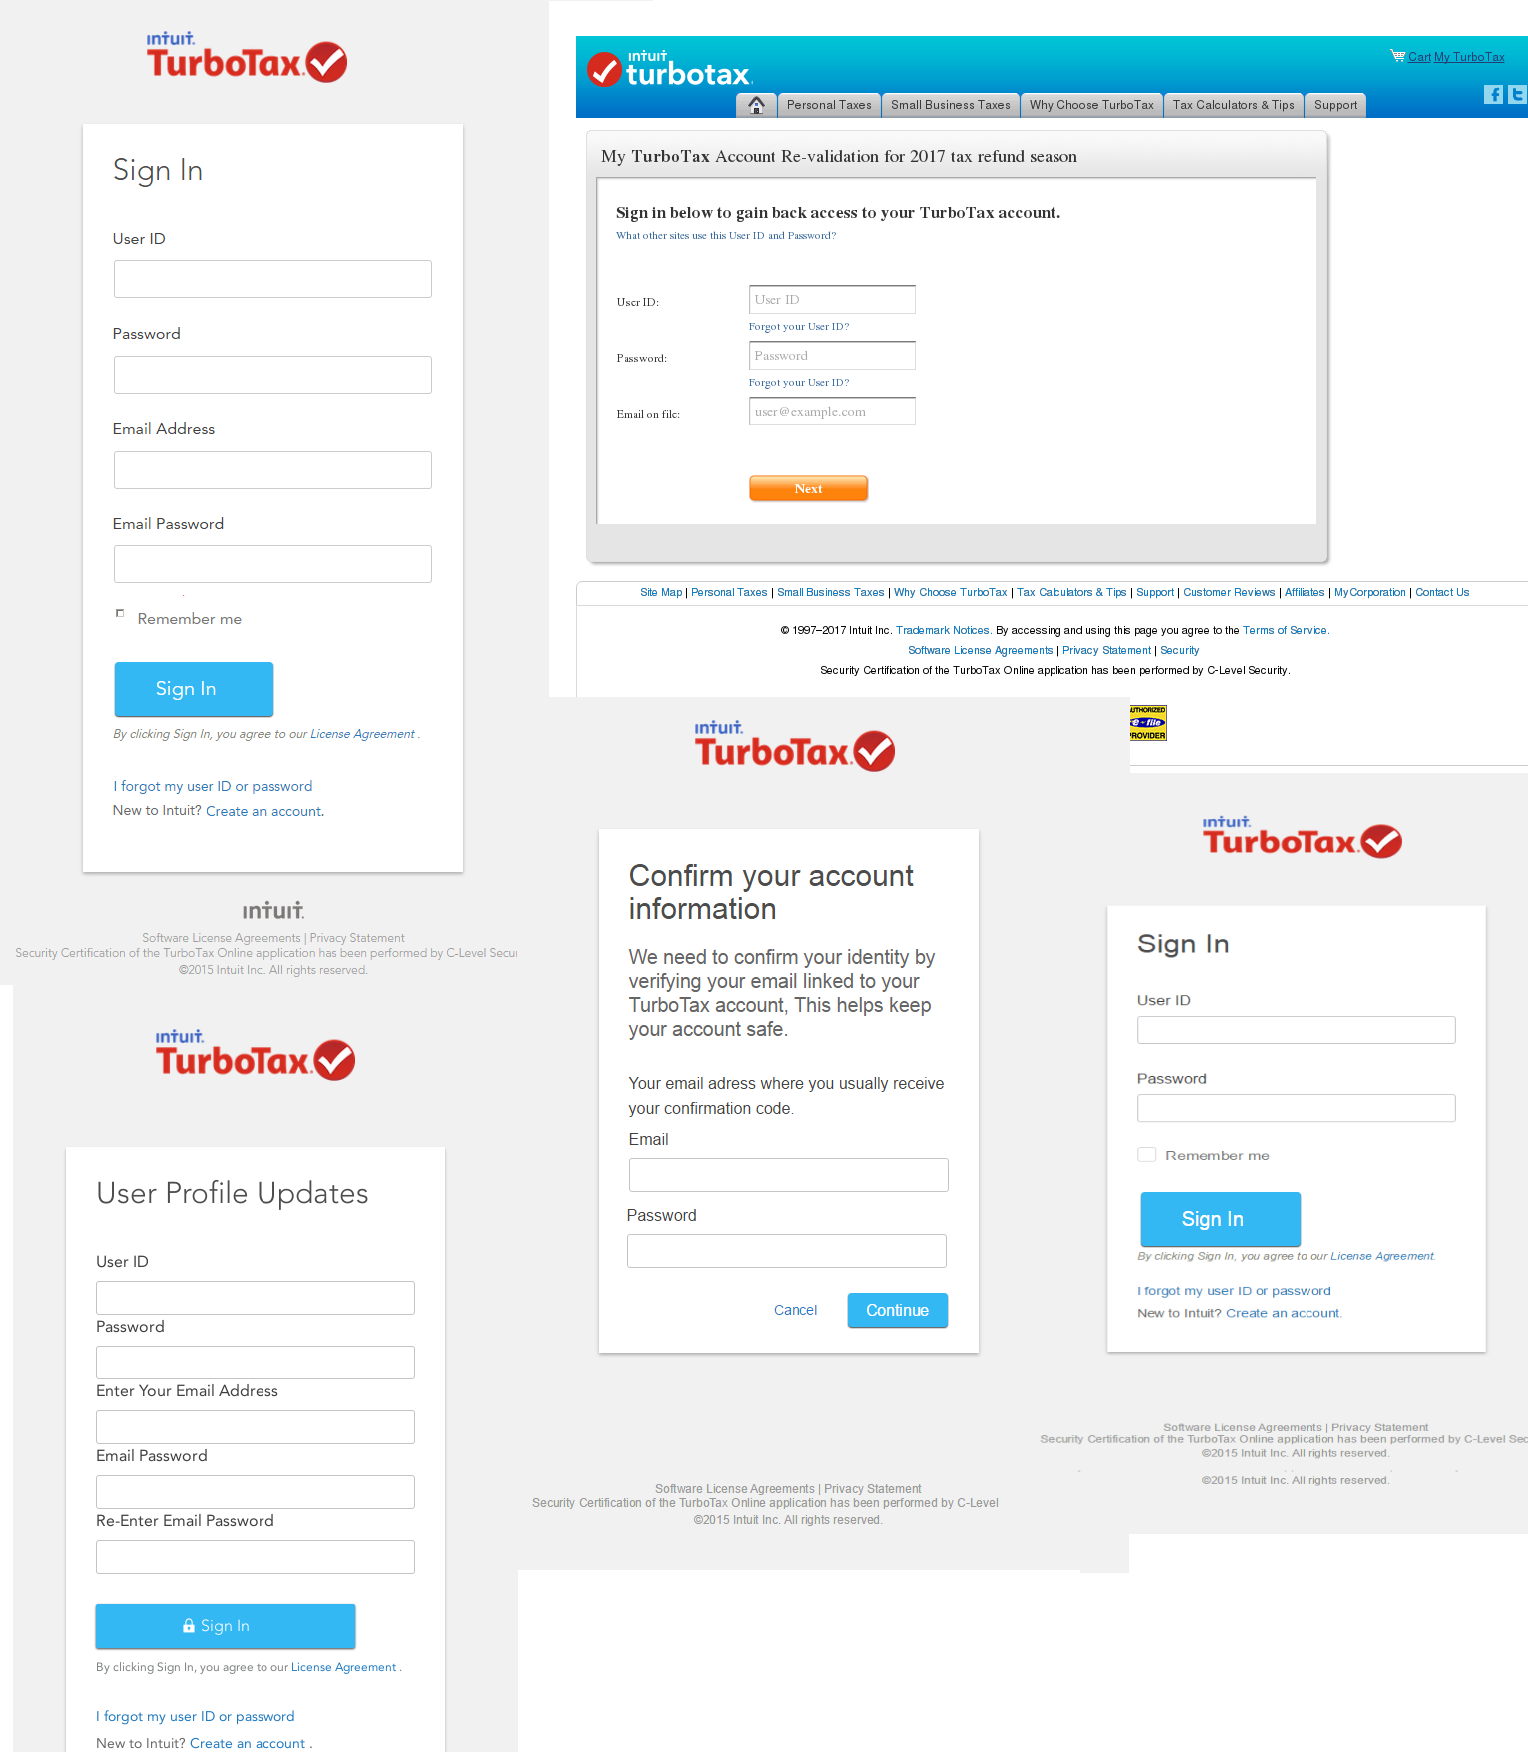 how to report backdoor roth in turbotax 2018 Free Download